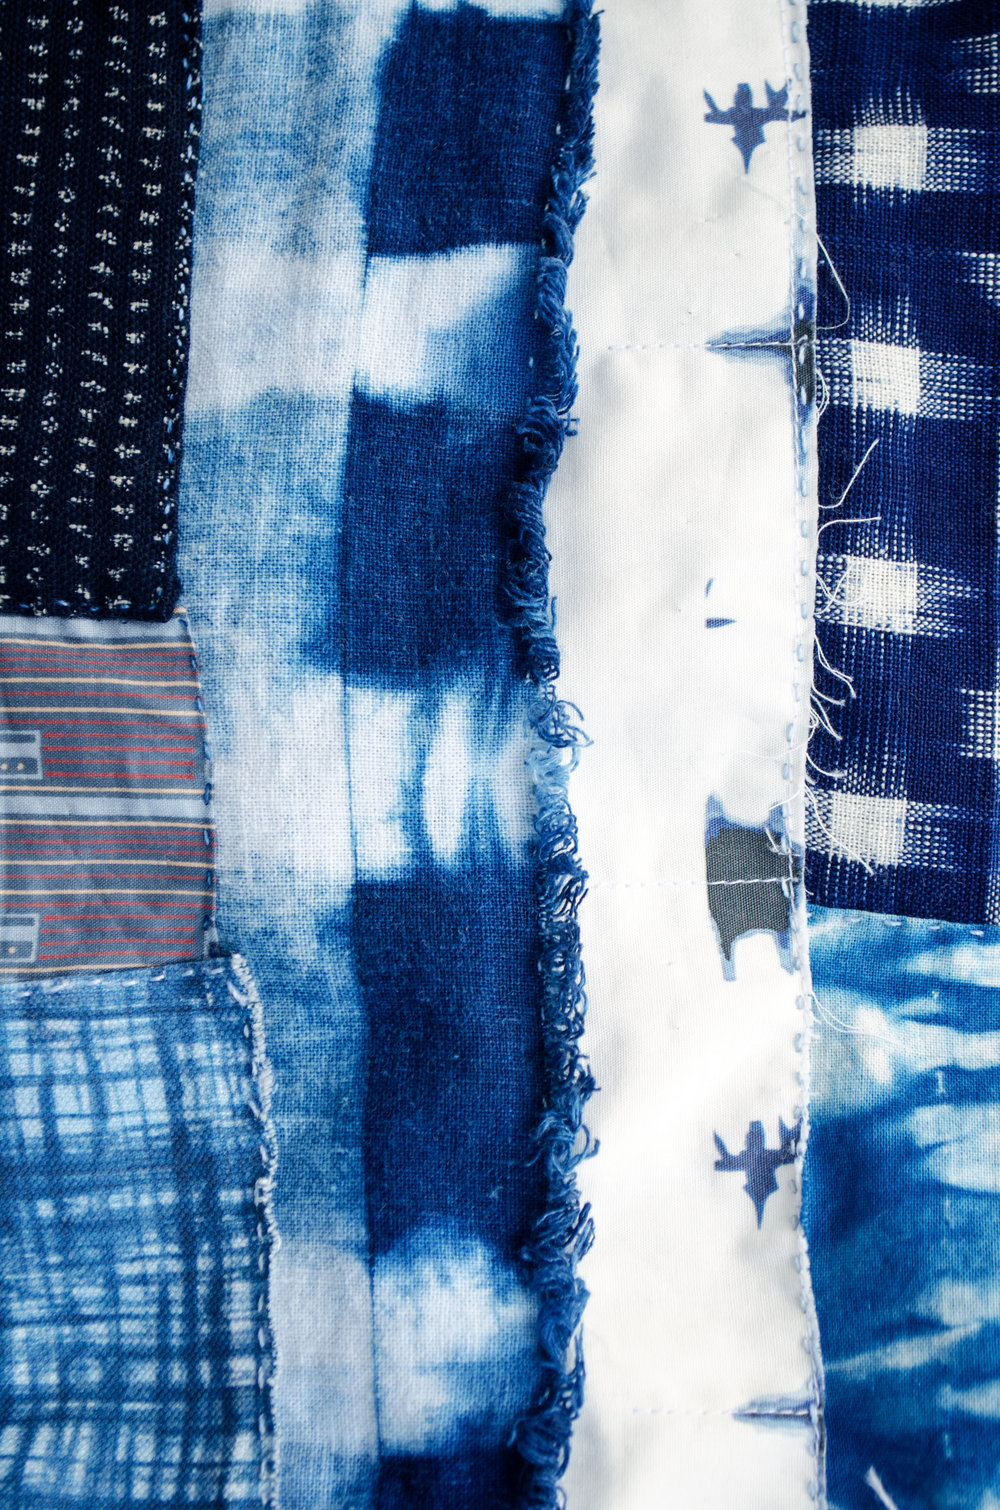 Shibori dyed linen stitched with other patches